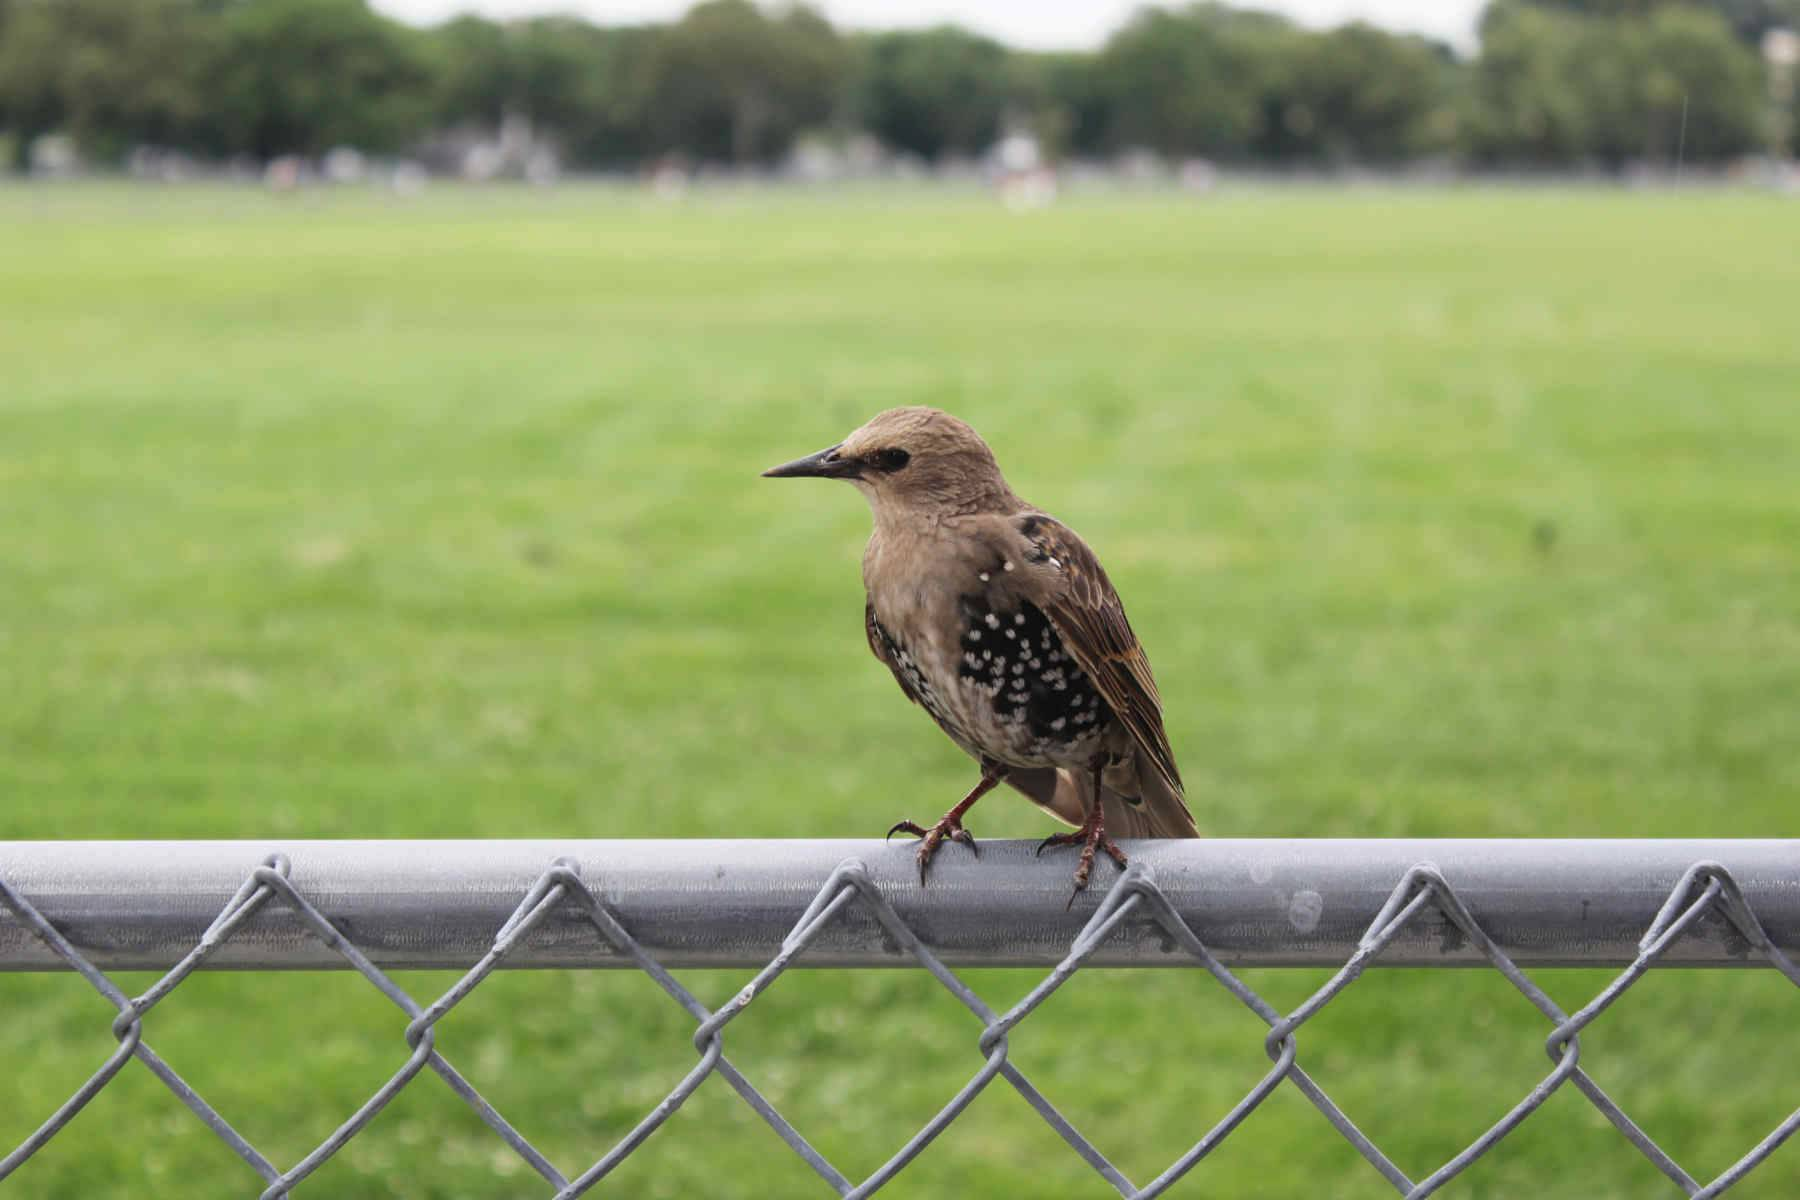 A bird sitting on the fence near the White House